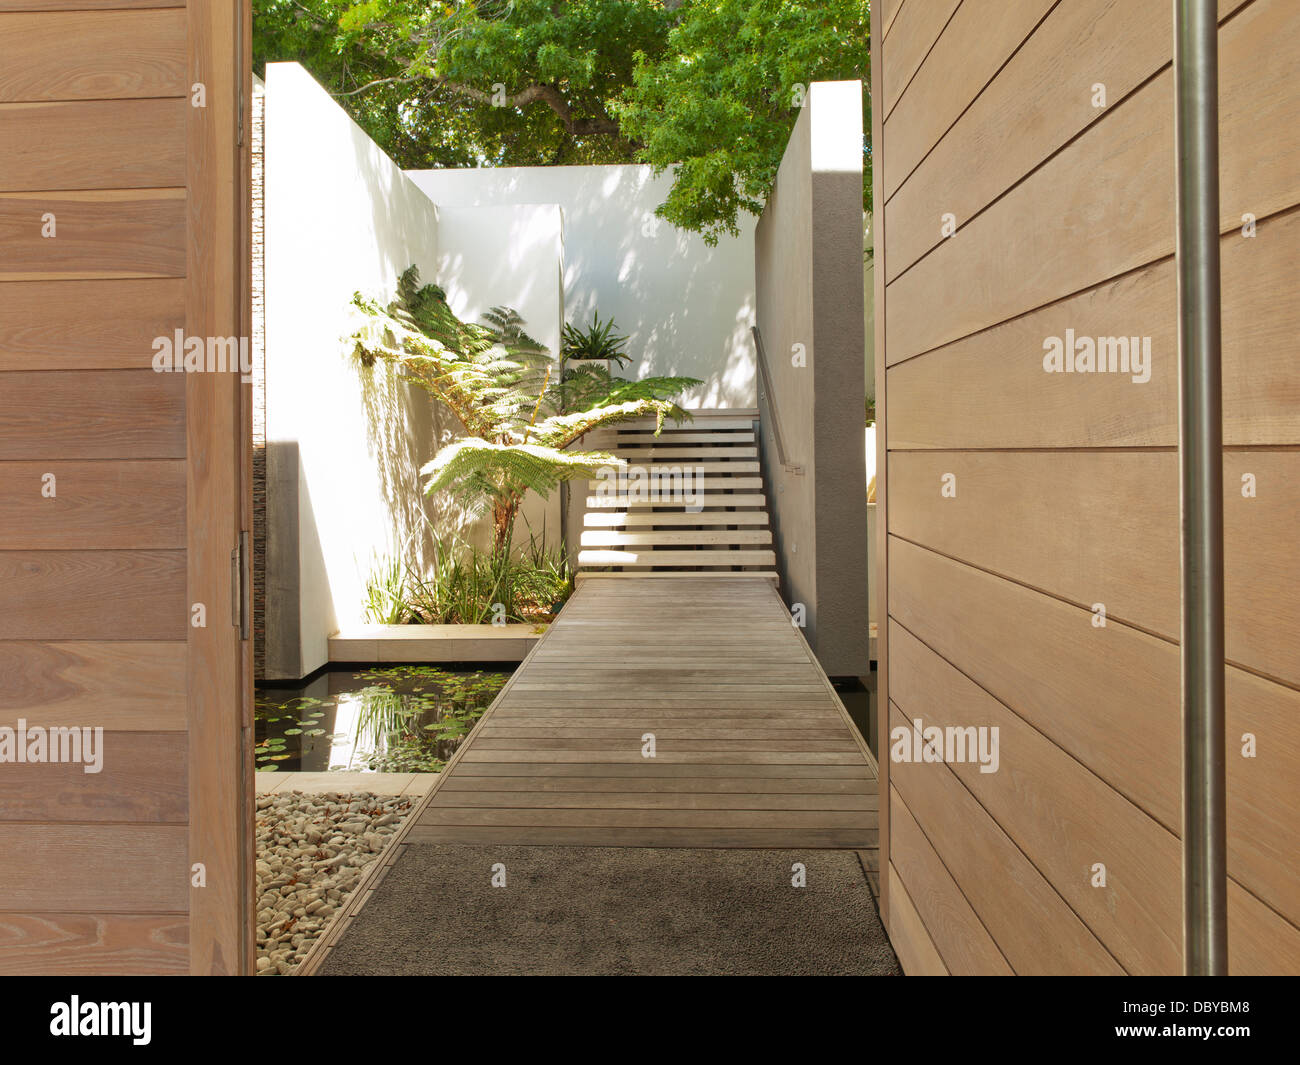 Footbridge and stairs modern courtyard - Stock Image